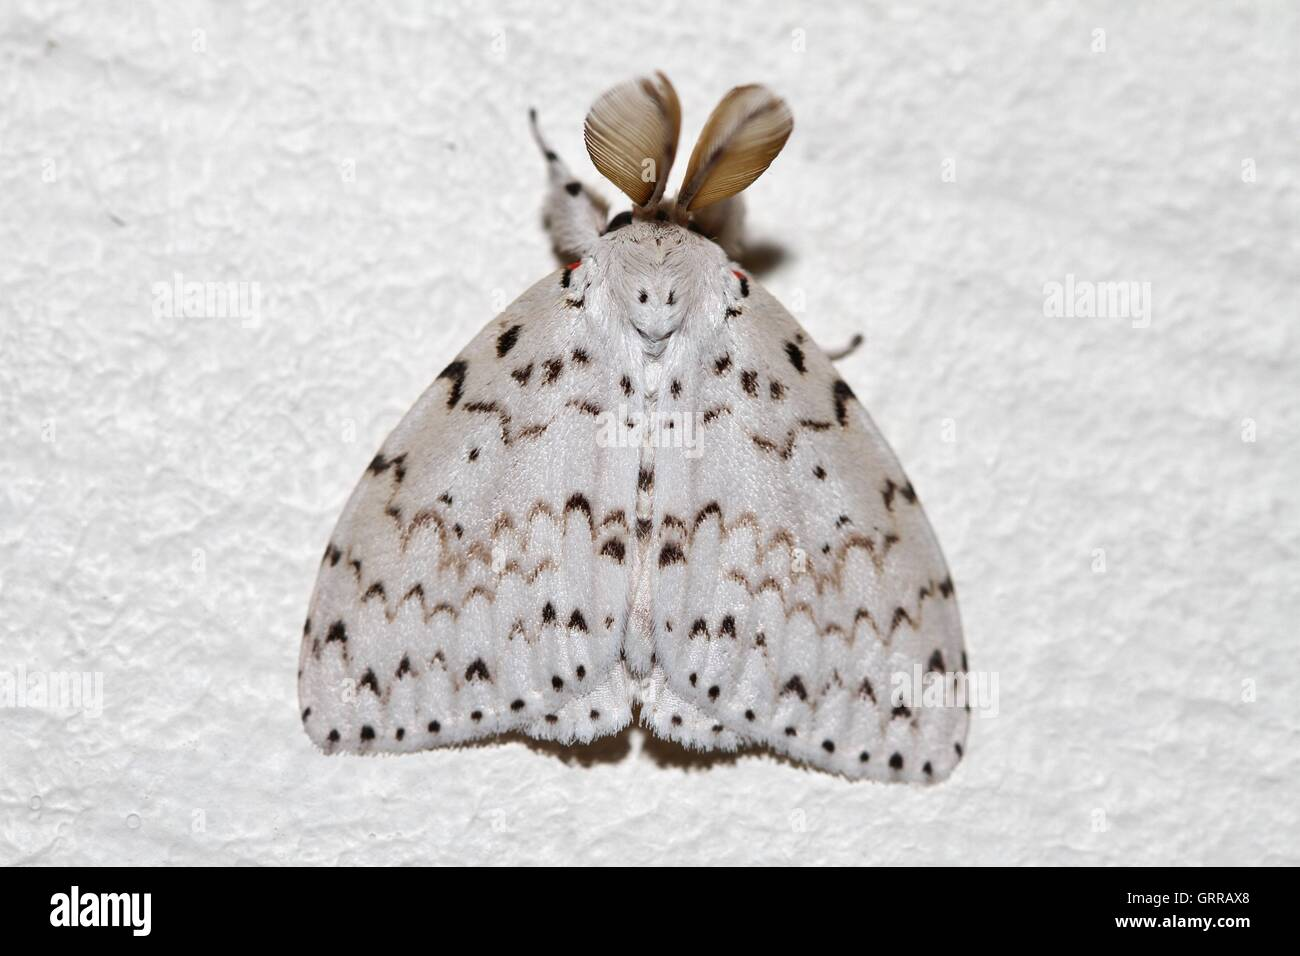 Moth with delta-like wings looking like the Concorde resting on the wall. - Stock Image